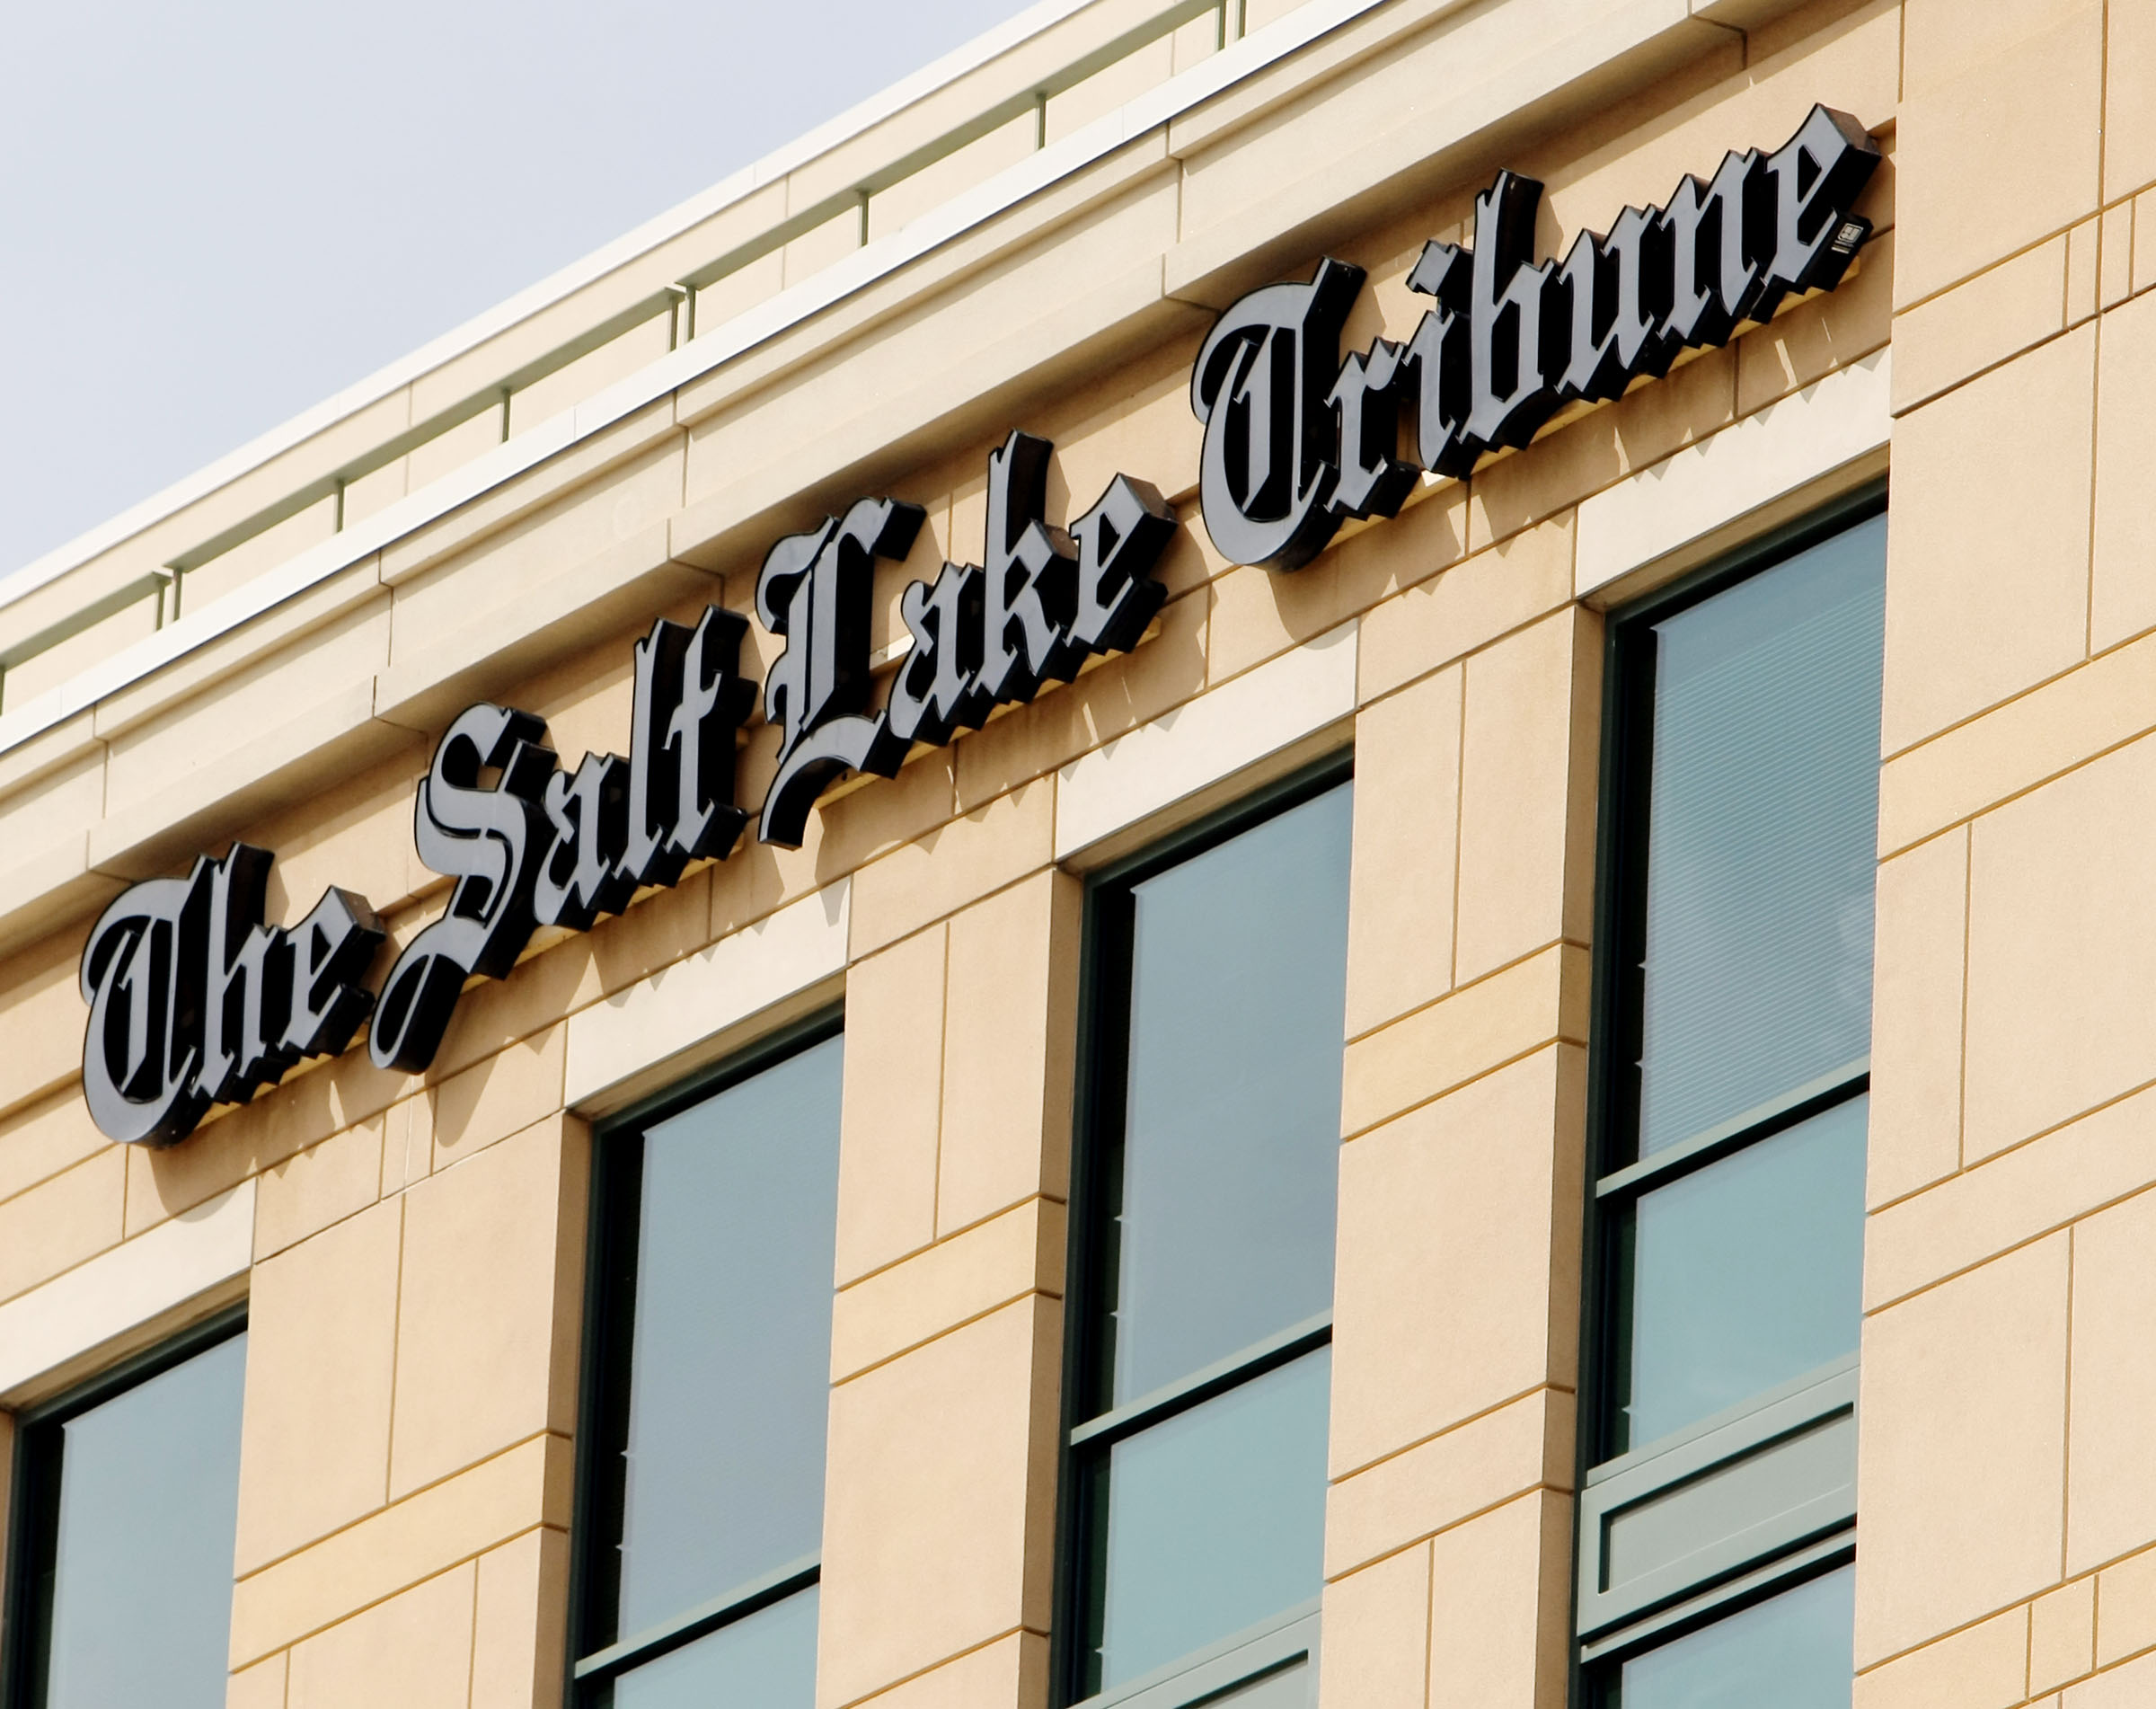 The Salt Lake Tribune's office is pictured on Wednesday, May 8, 2019. The paper announced on Monday, Nov. 4, 2019, that it was granted nonprofit status by the IRS.